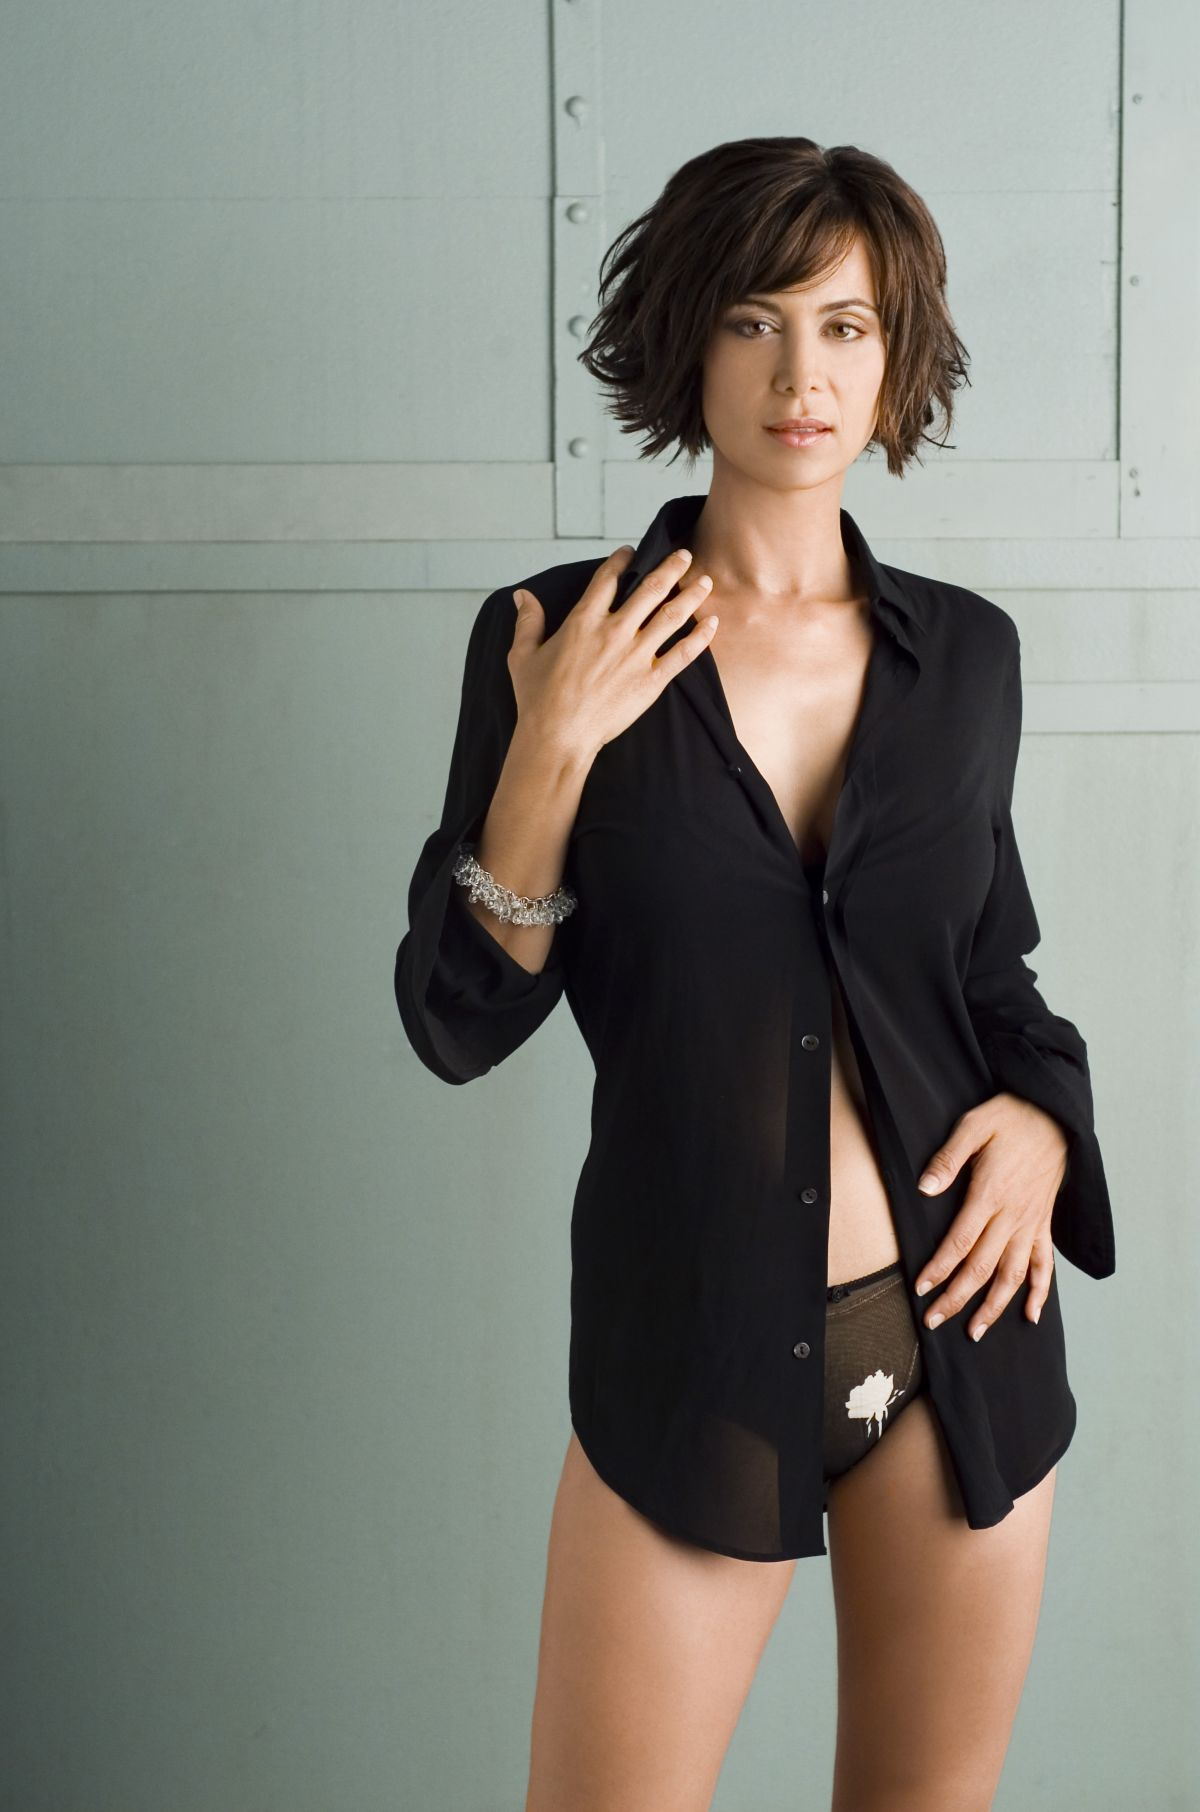 Catherine Bell At Kevin Foley Photoshoot 2002 Celebzz